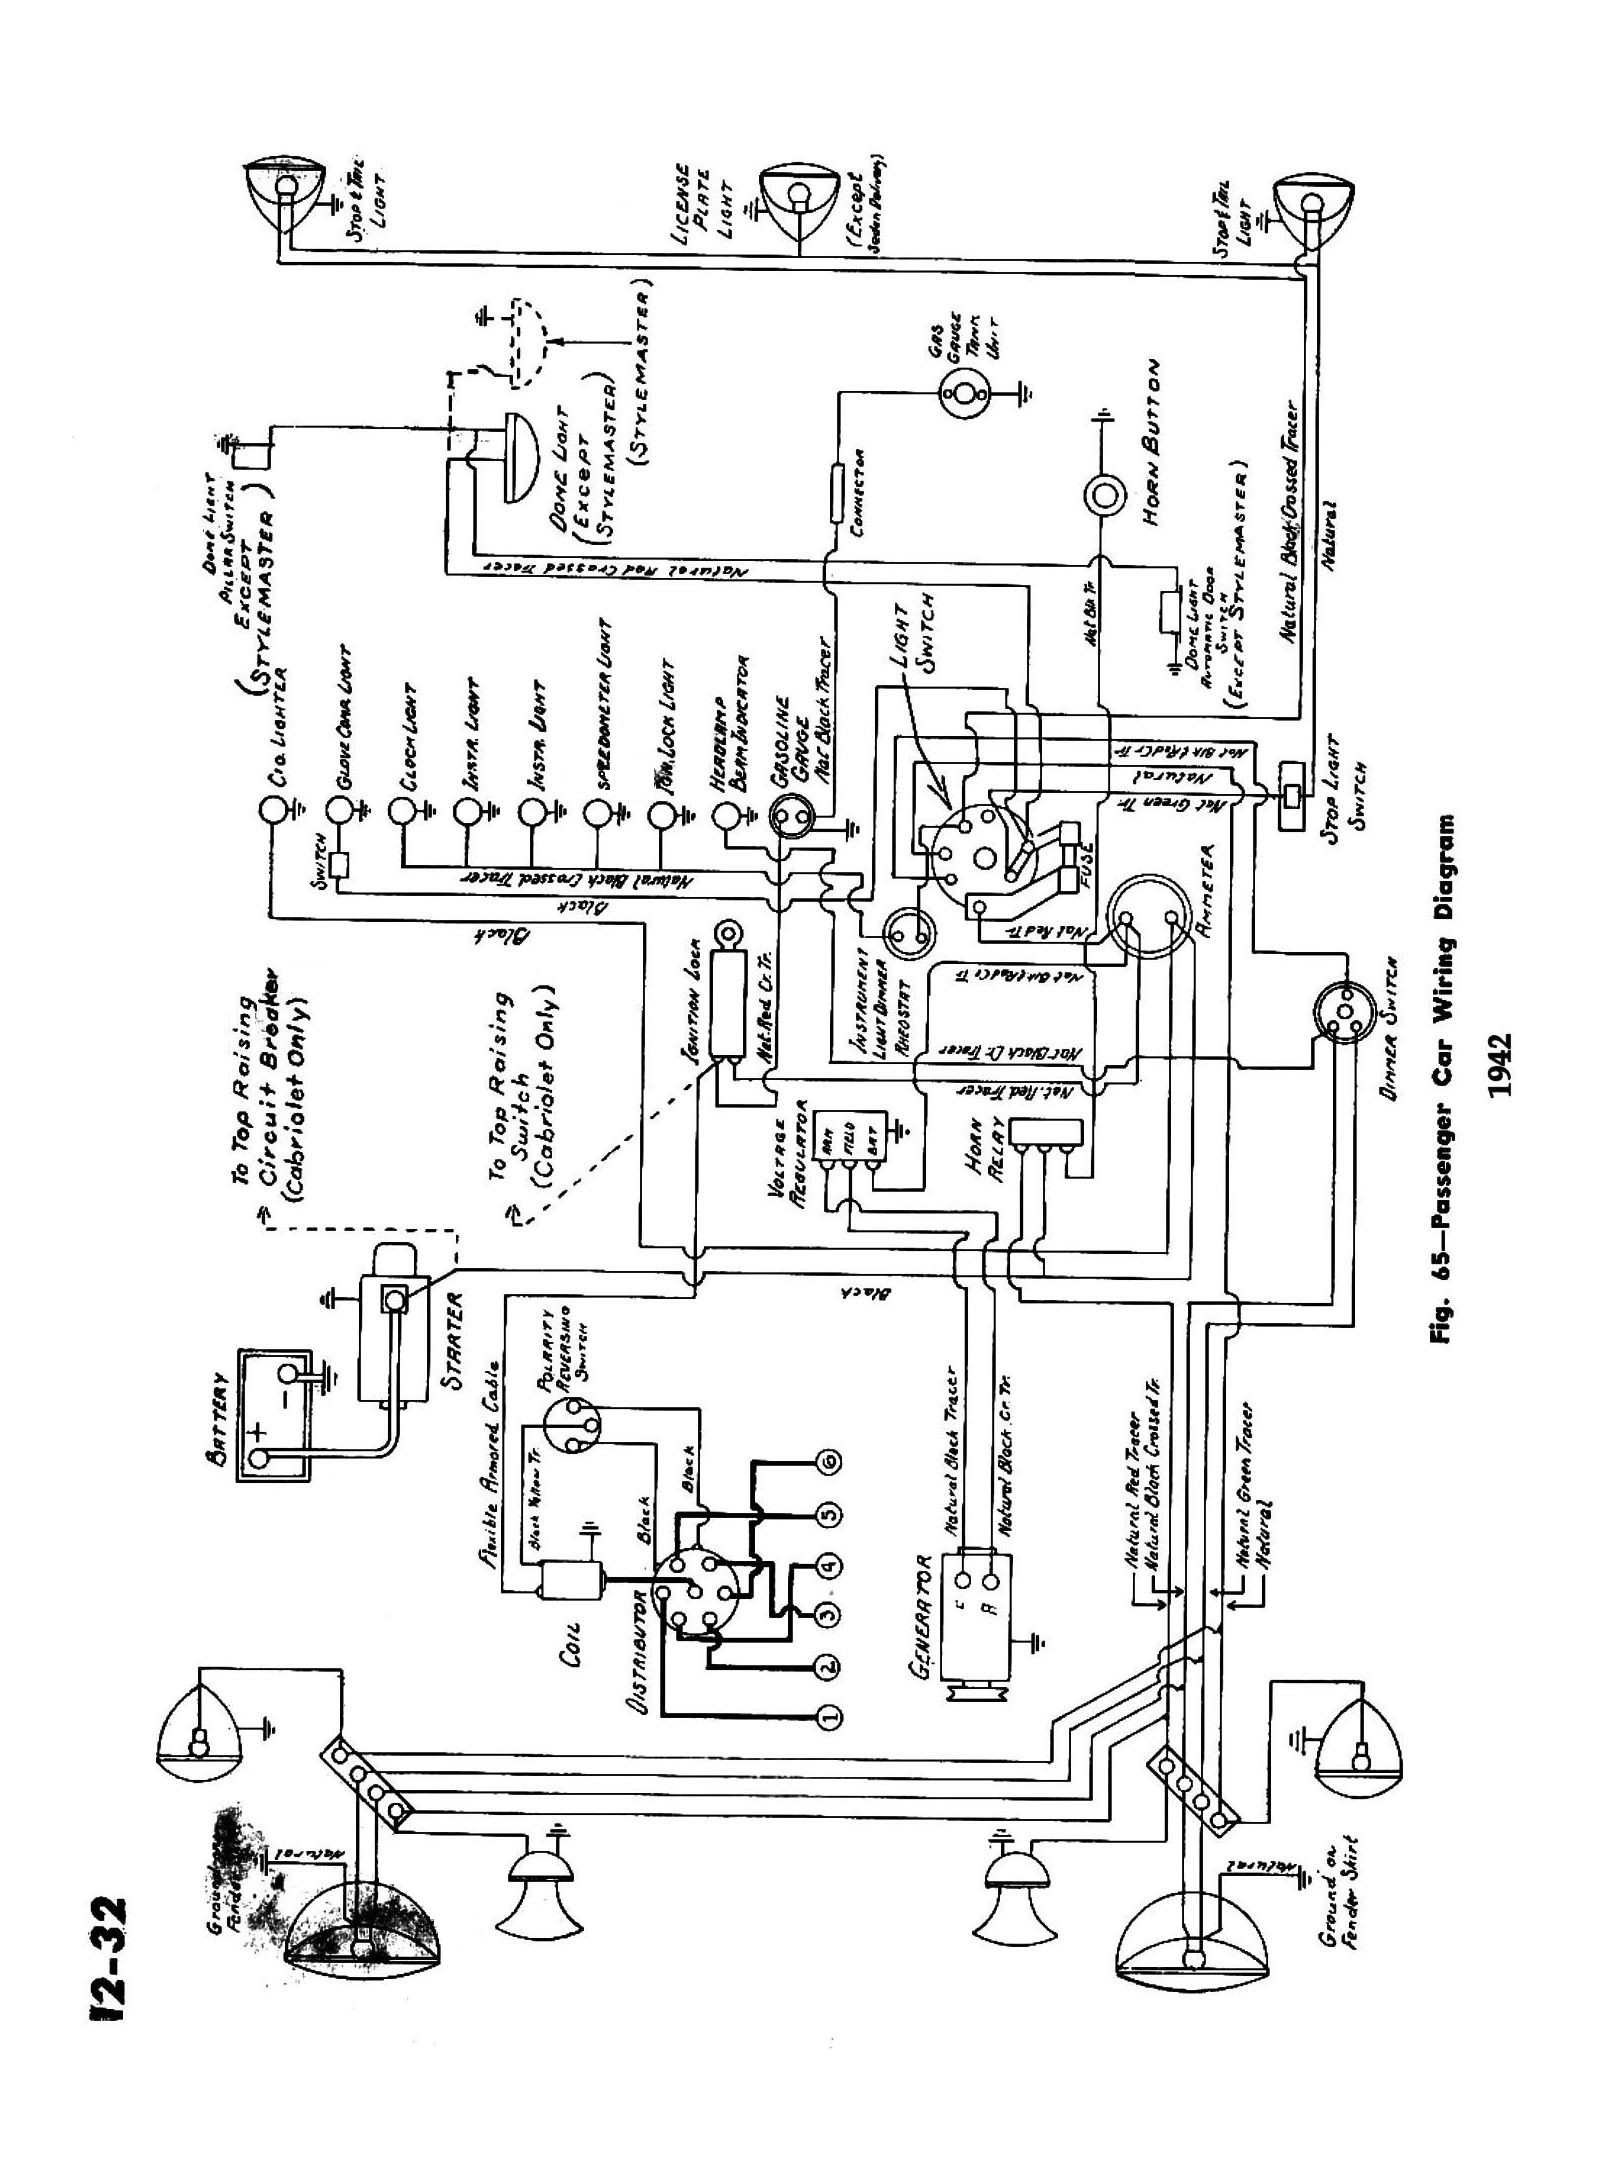 42csm1232a chevy wiring diagrams truck wiring harness at eliteediting.co